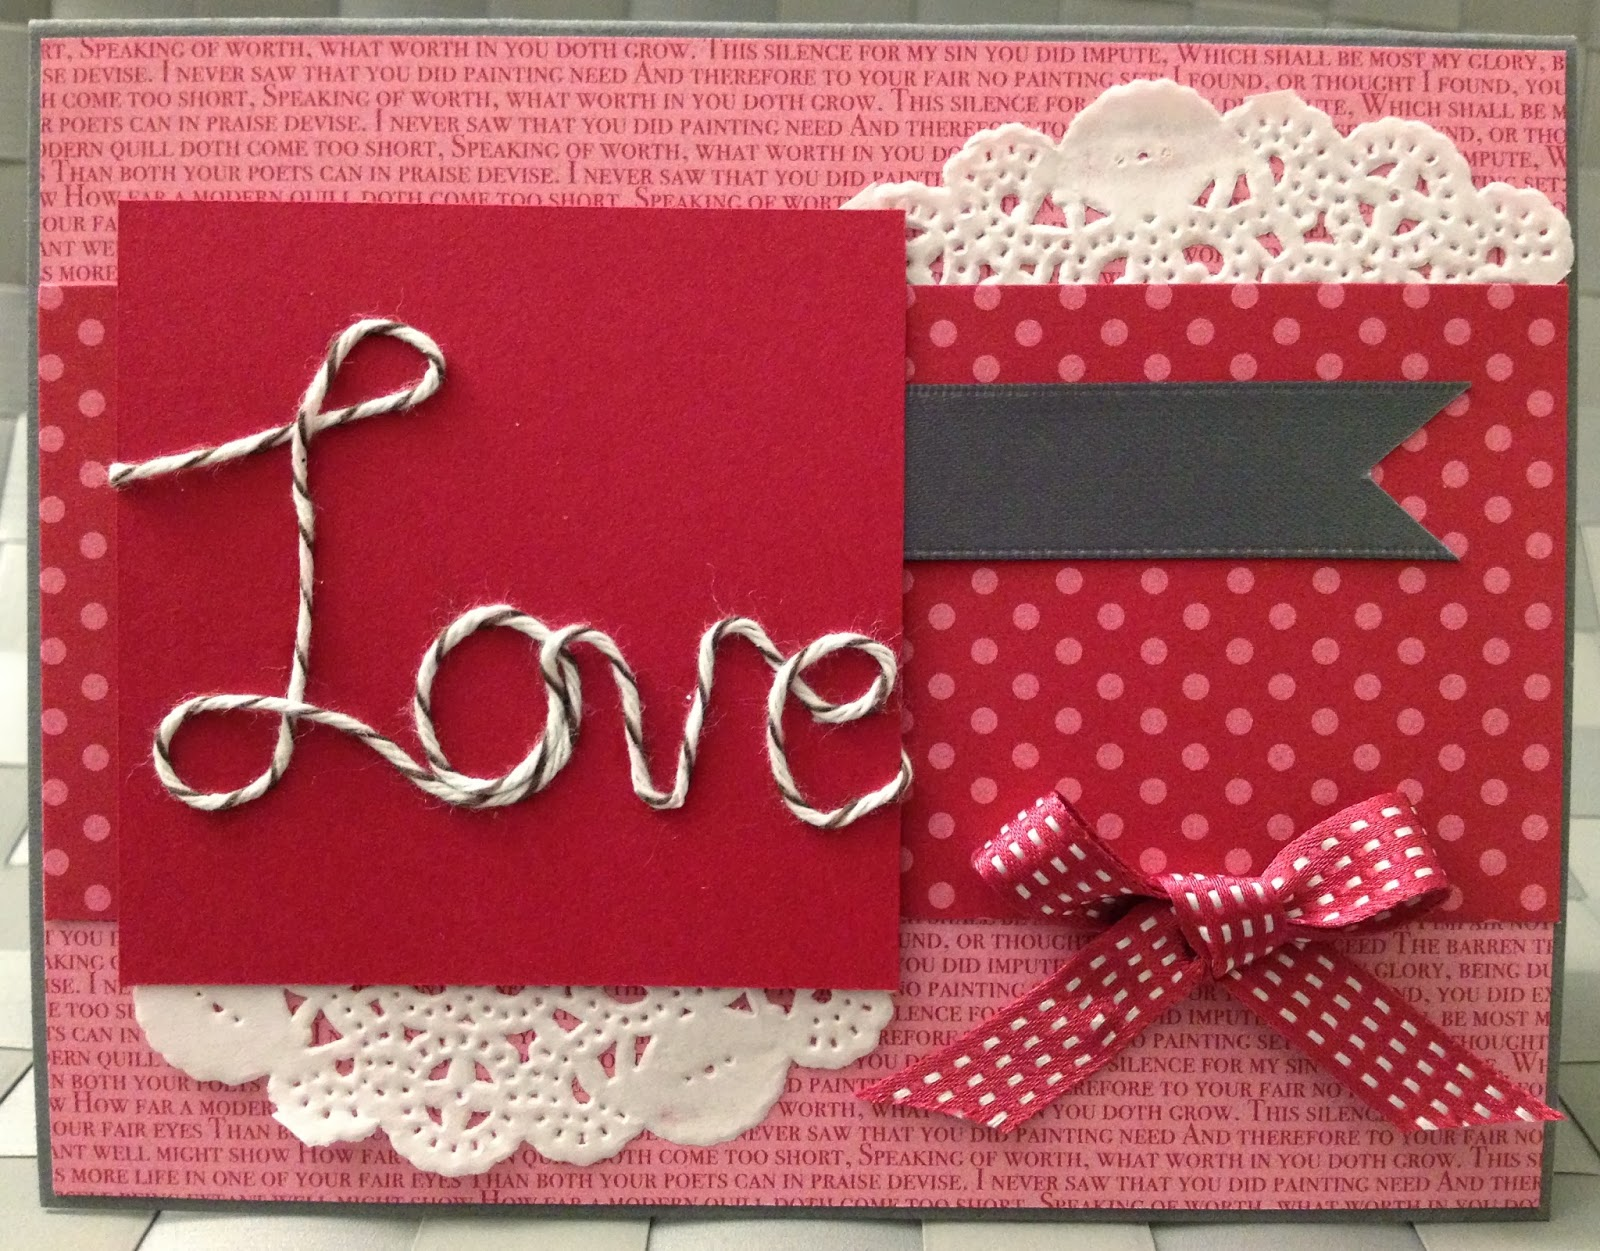 Valentines Day Gift Cards 2016 For Himher